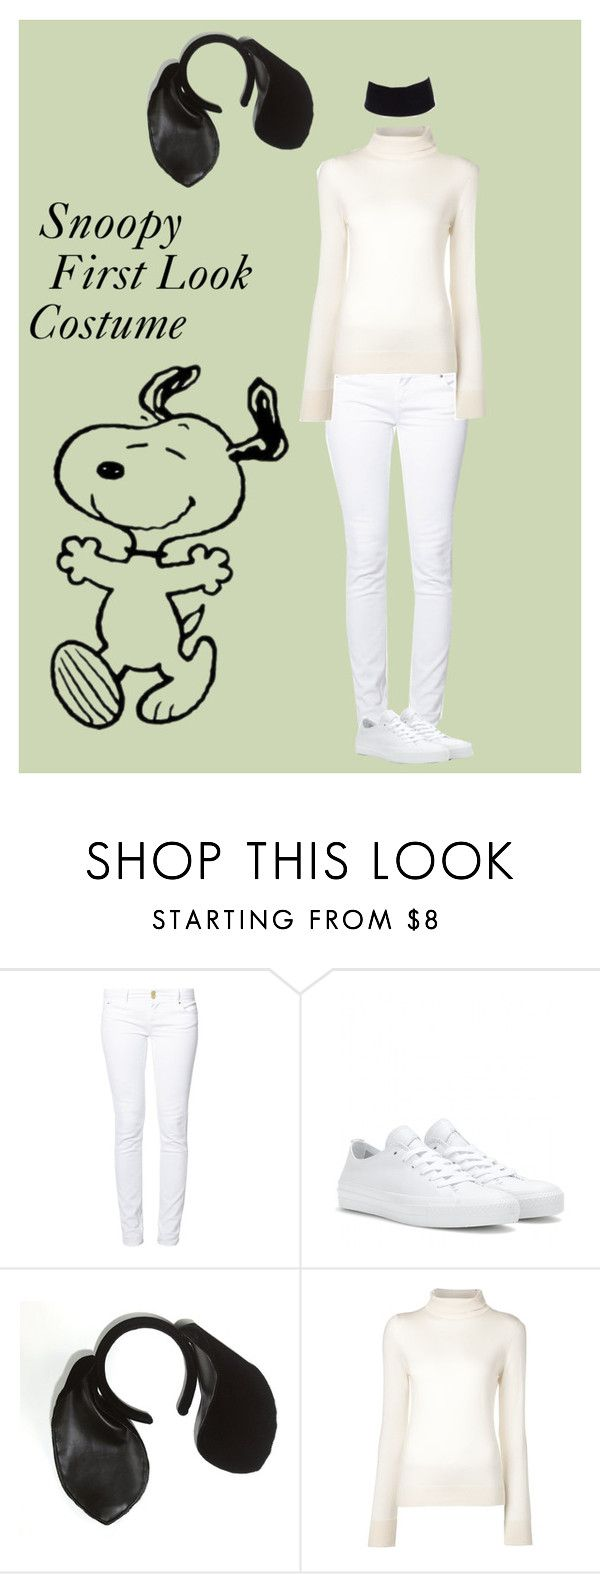 """Snoopy Costume"" by mandy337 ❤ liked on Polyvore featuring even&odd, Converse, The Row, River Island, women's clothing, women's fashion, women, female, woman and misses"